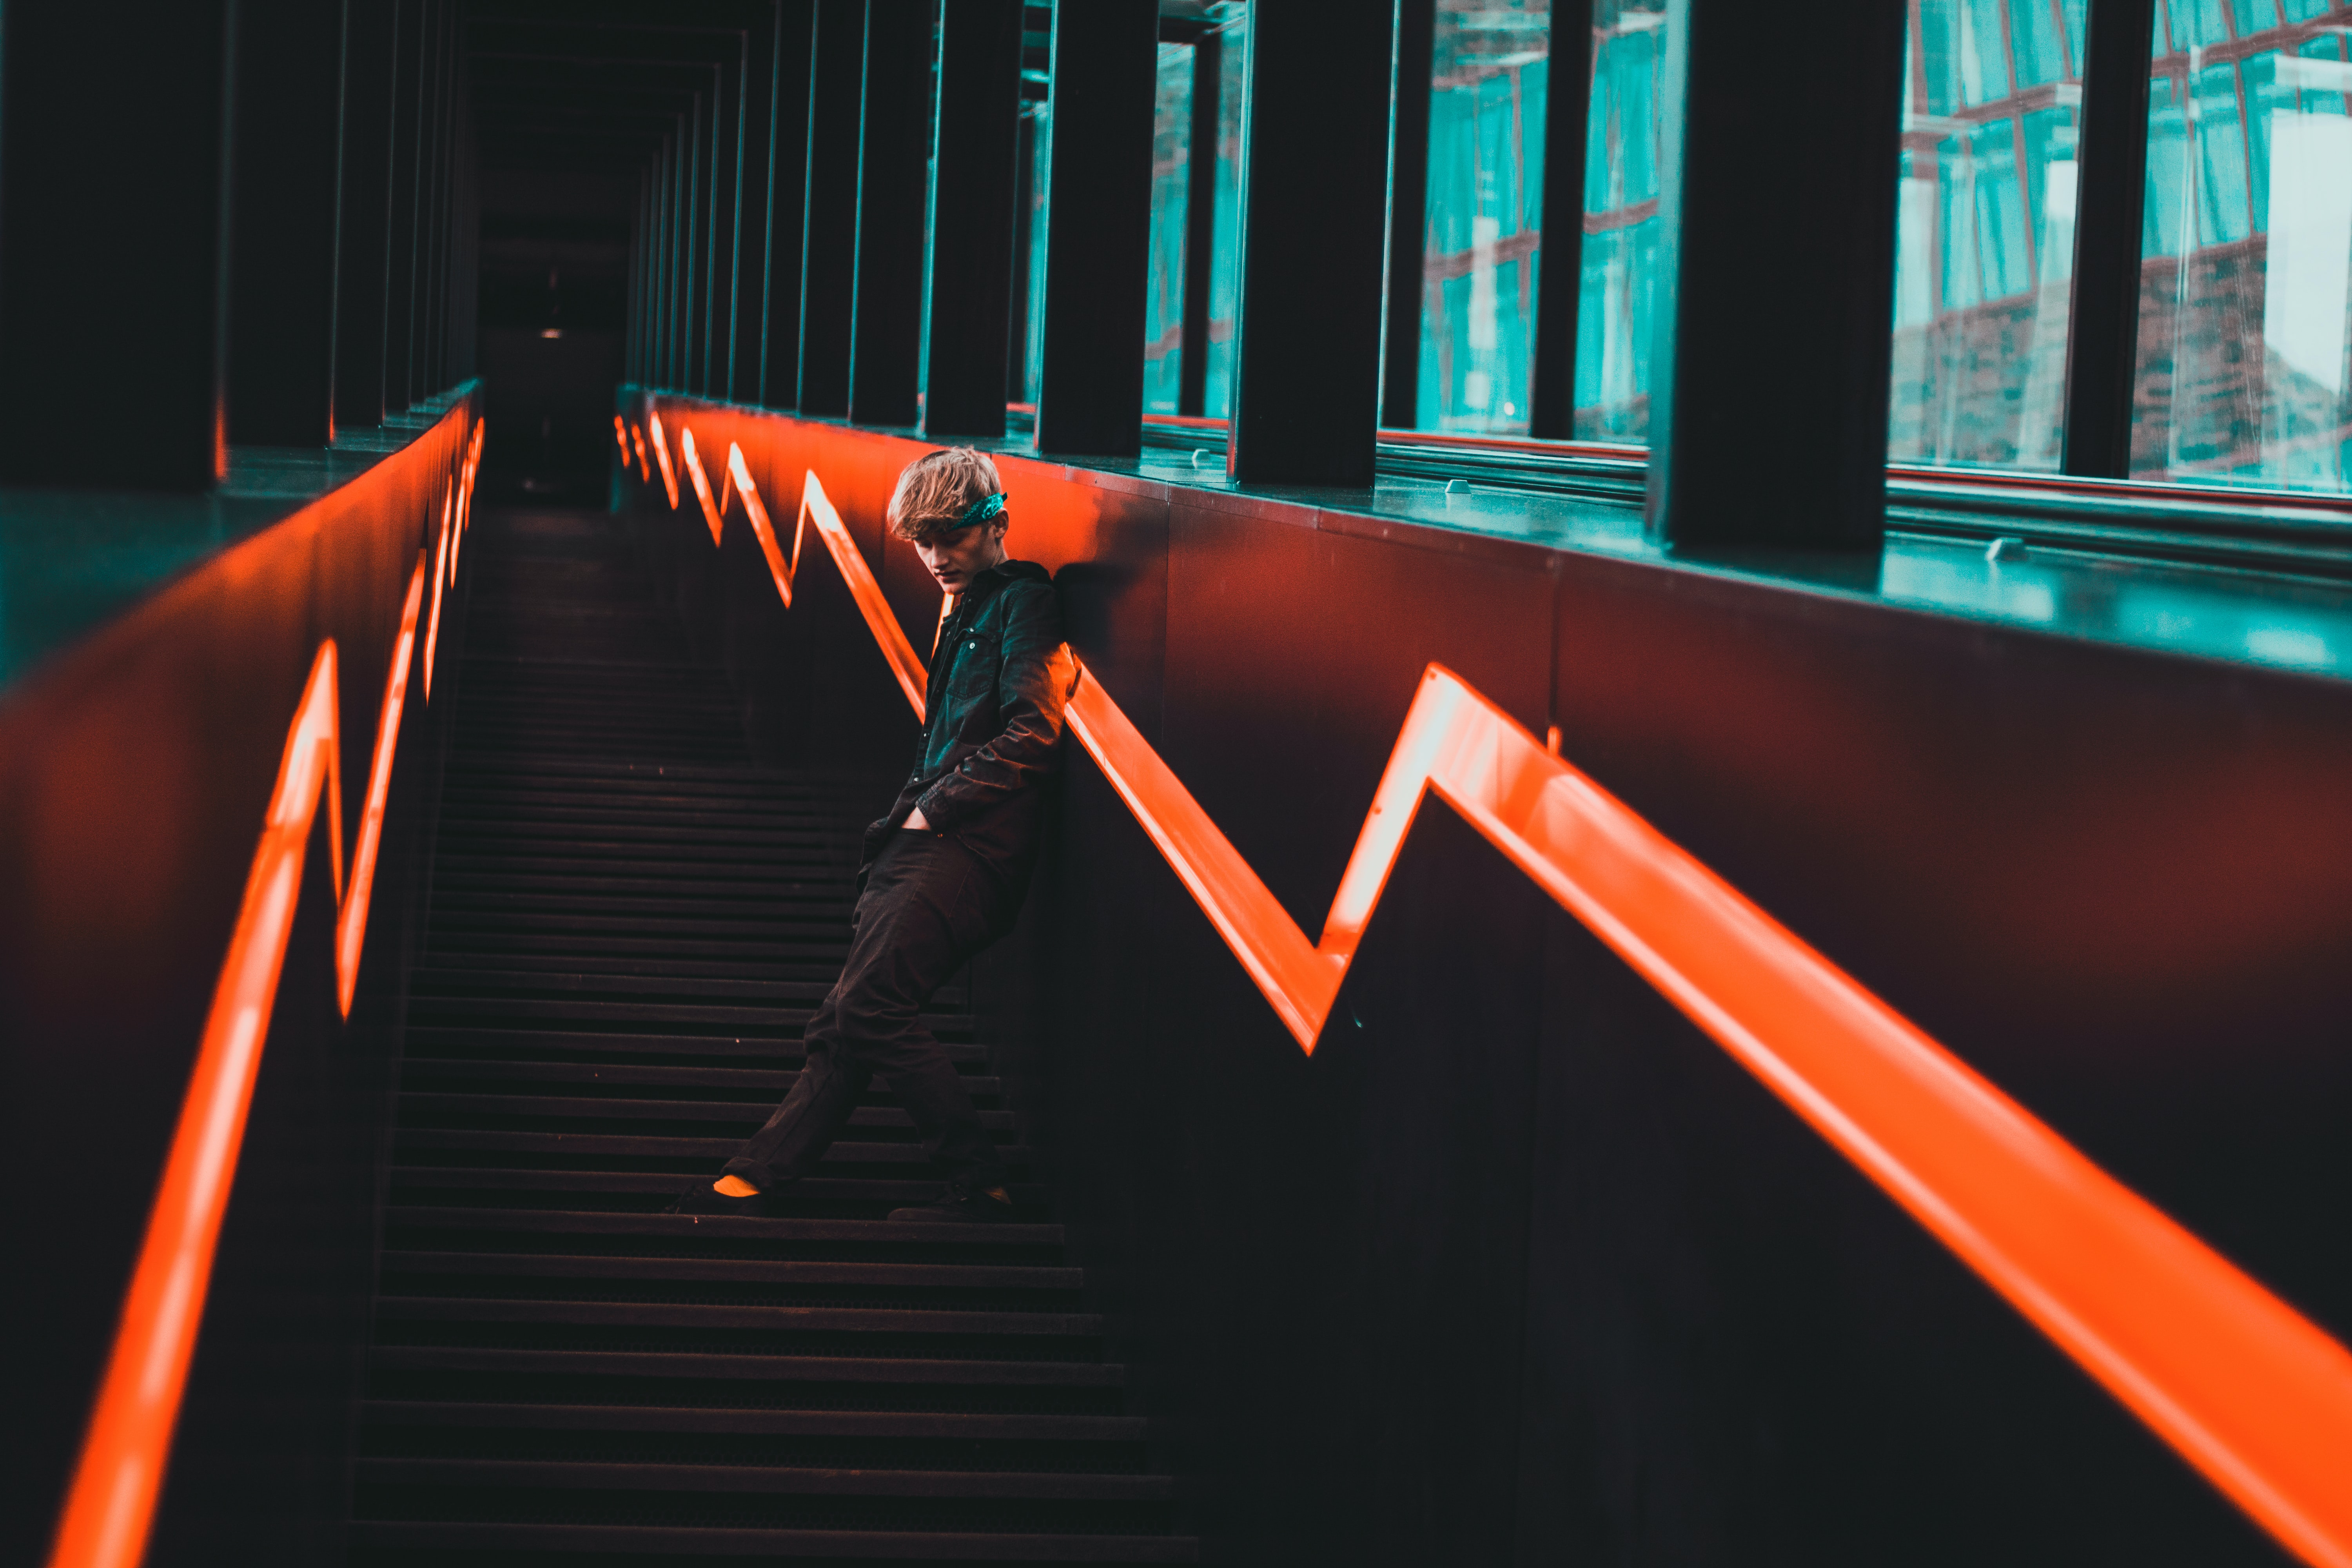 man leaning on stair railings during night time